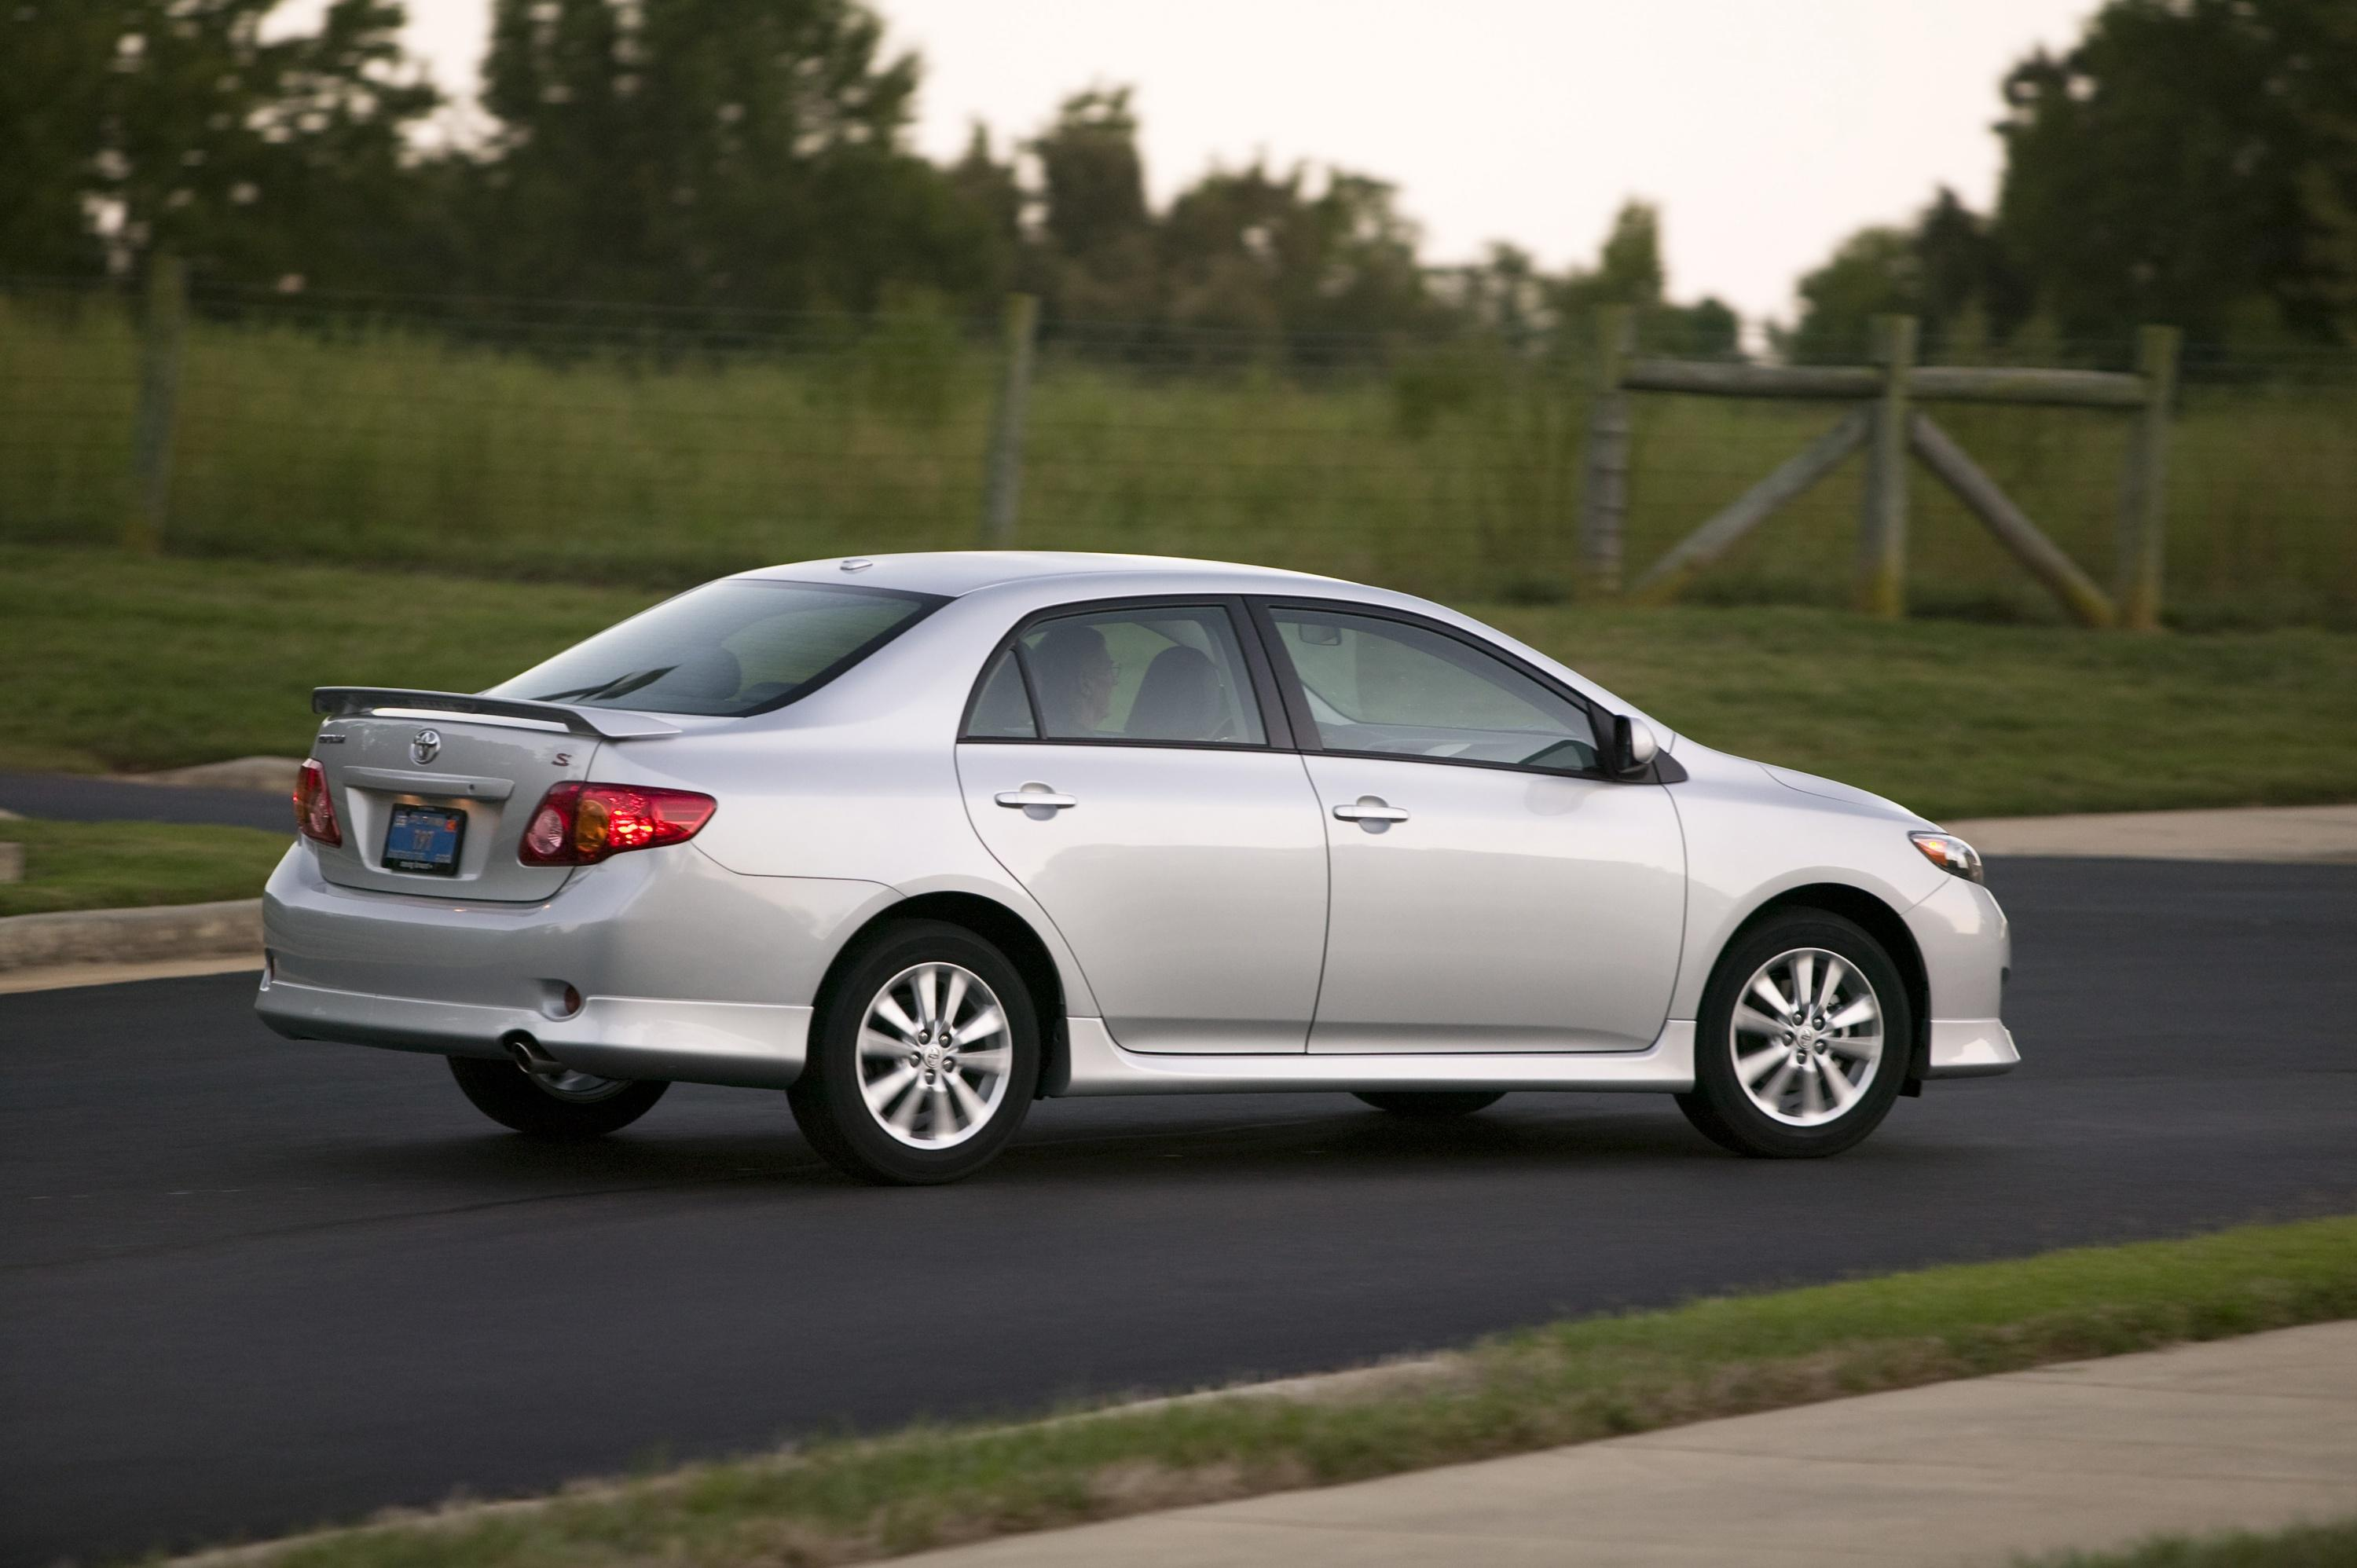 Tenth Generation Toyota Corolla Offers Standout